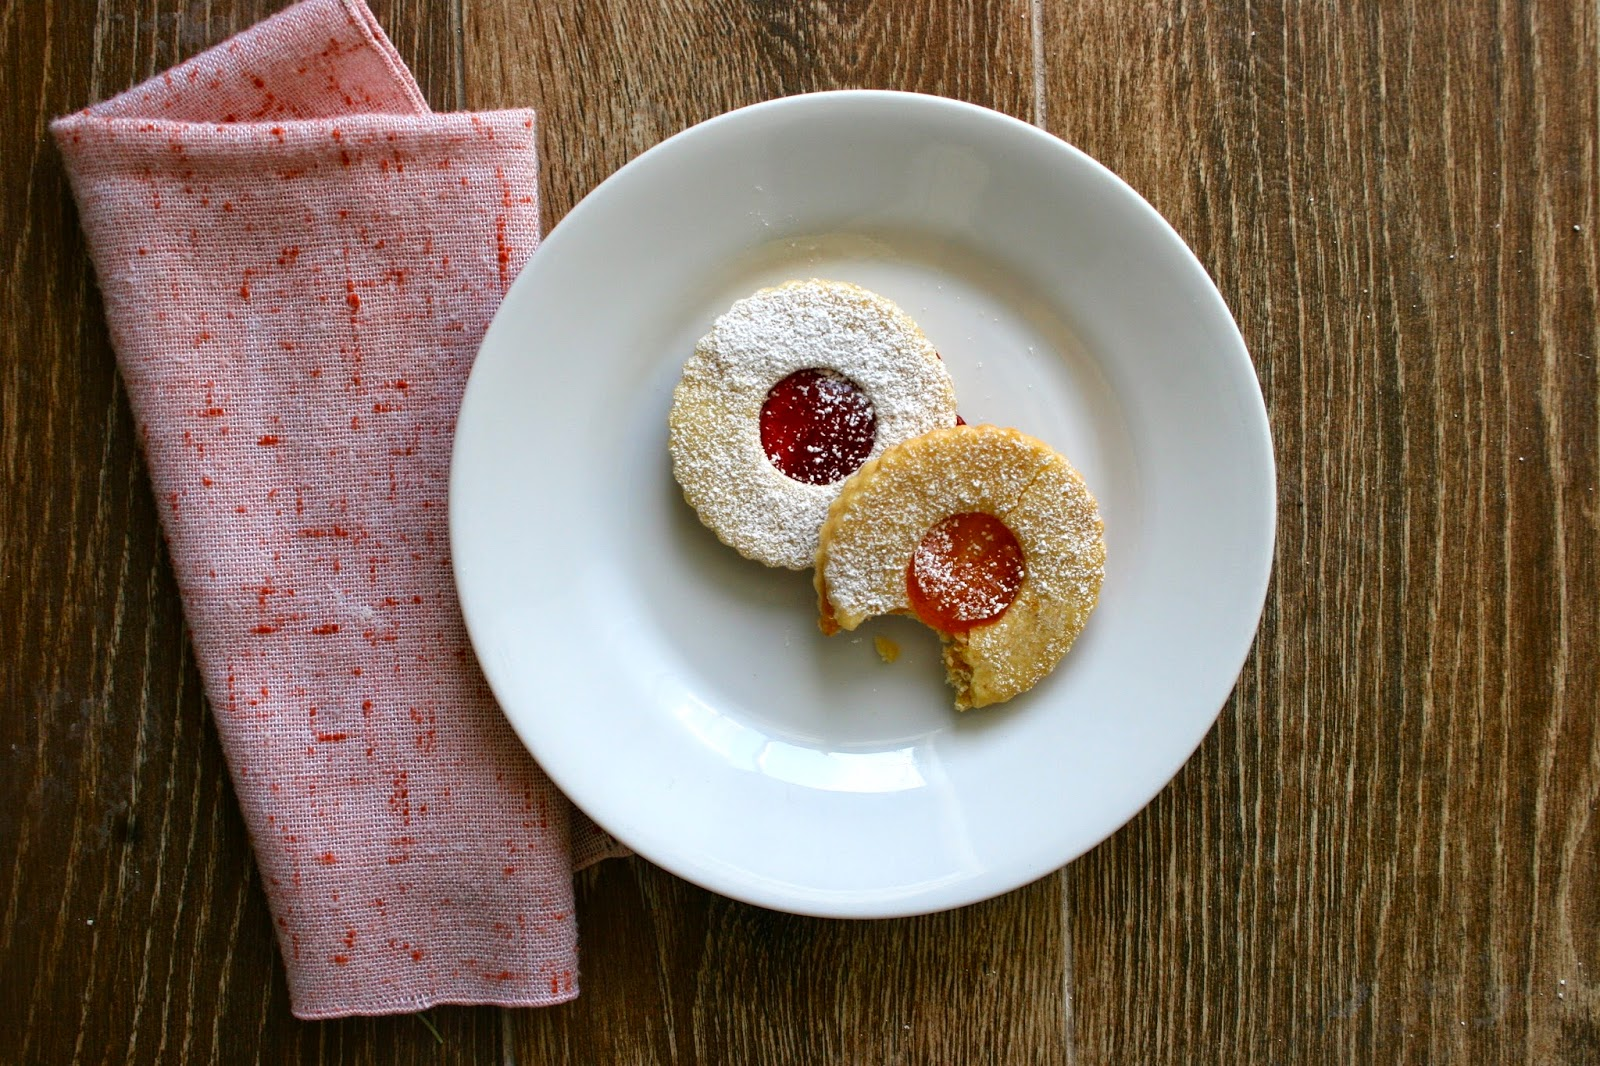 Strawberry and Apricot Jam Cookies on Plate